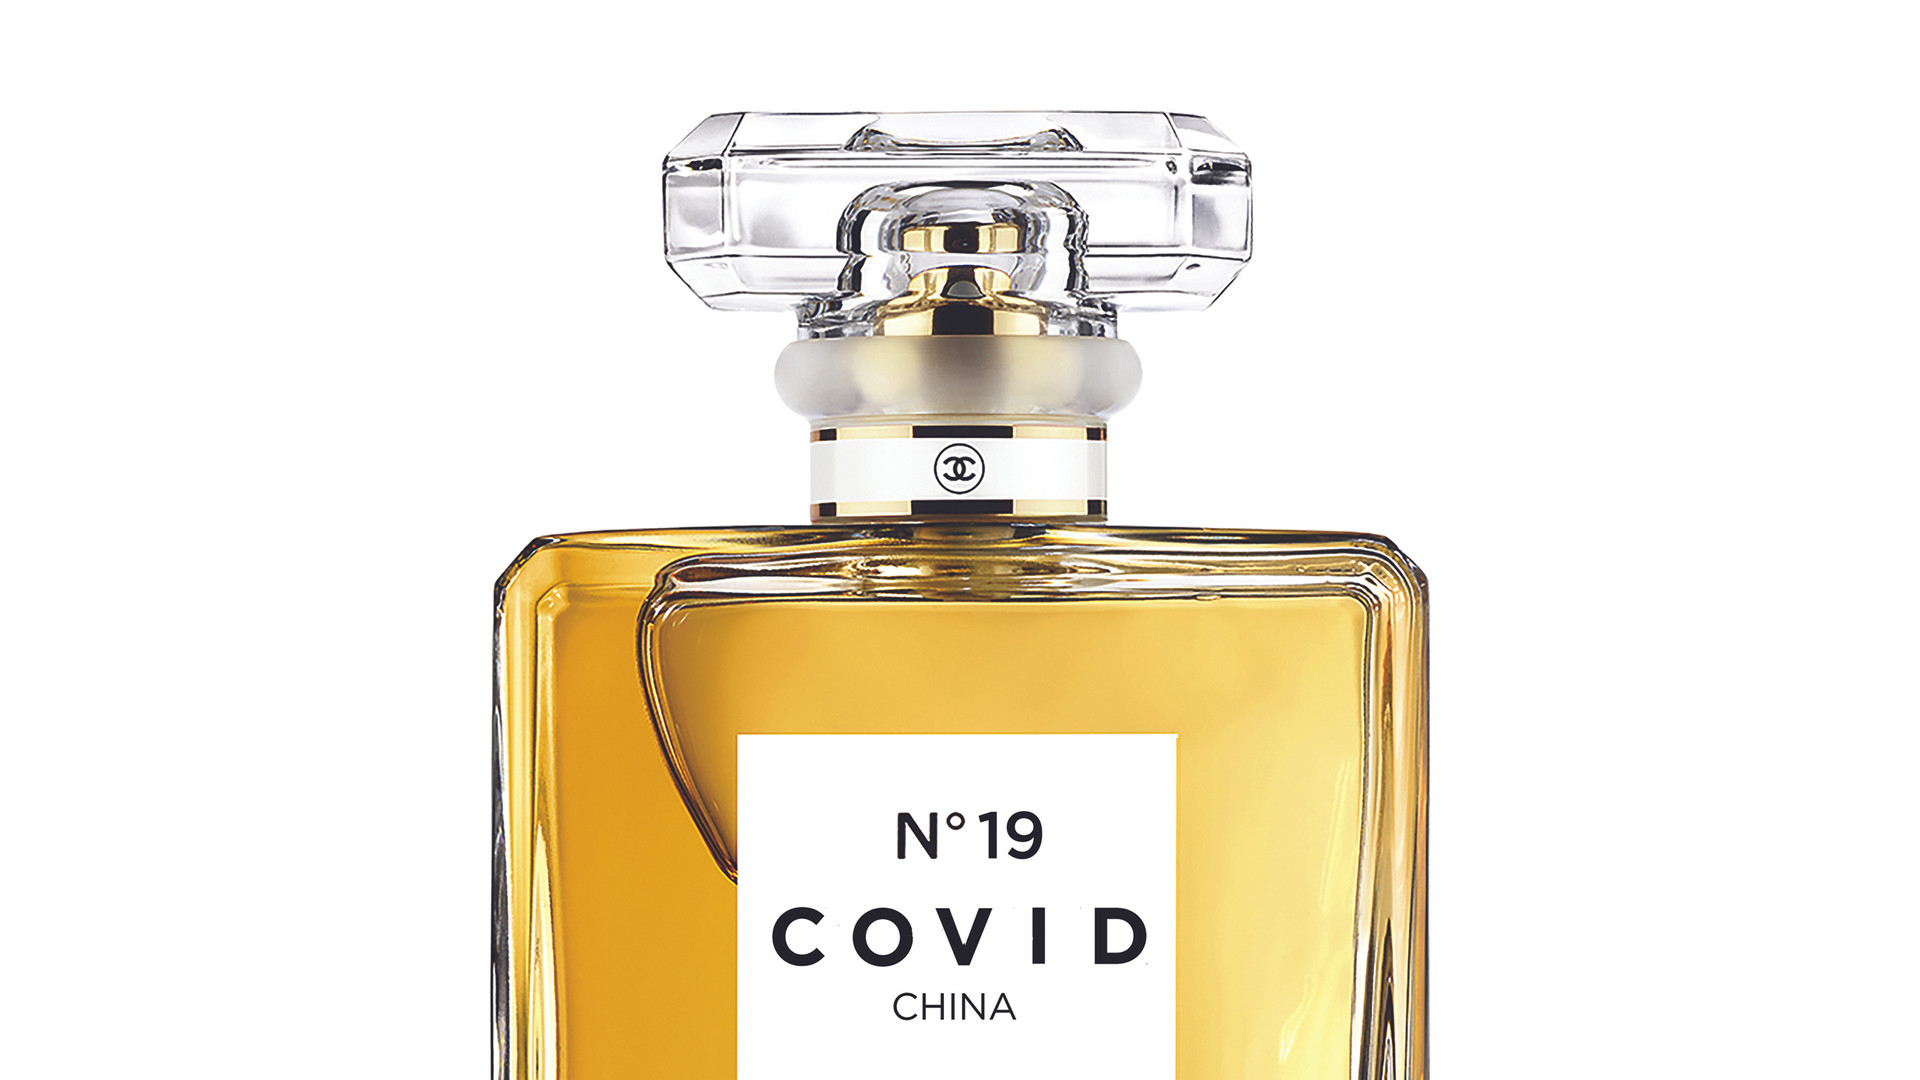 COVID No.19 EAU DE DISTANCE (White)